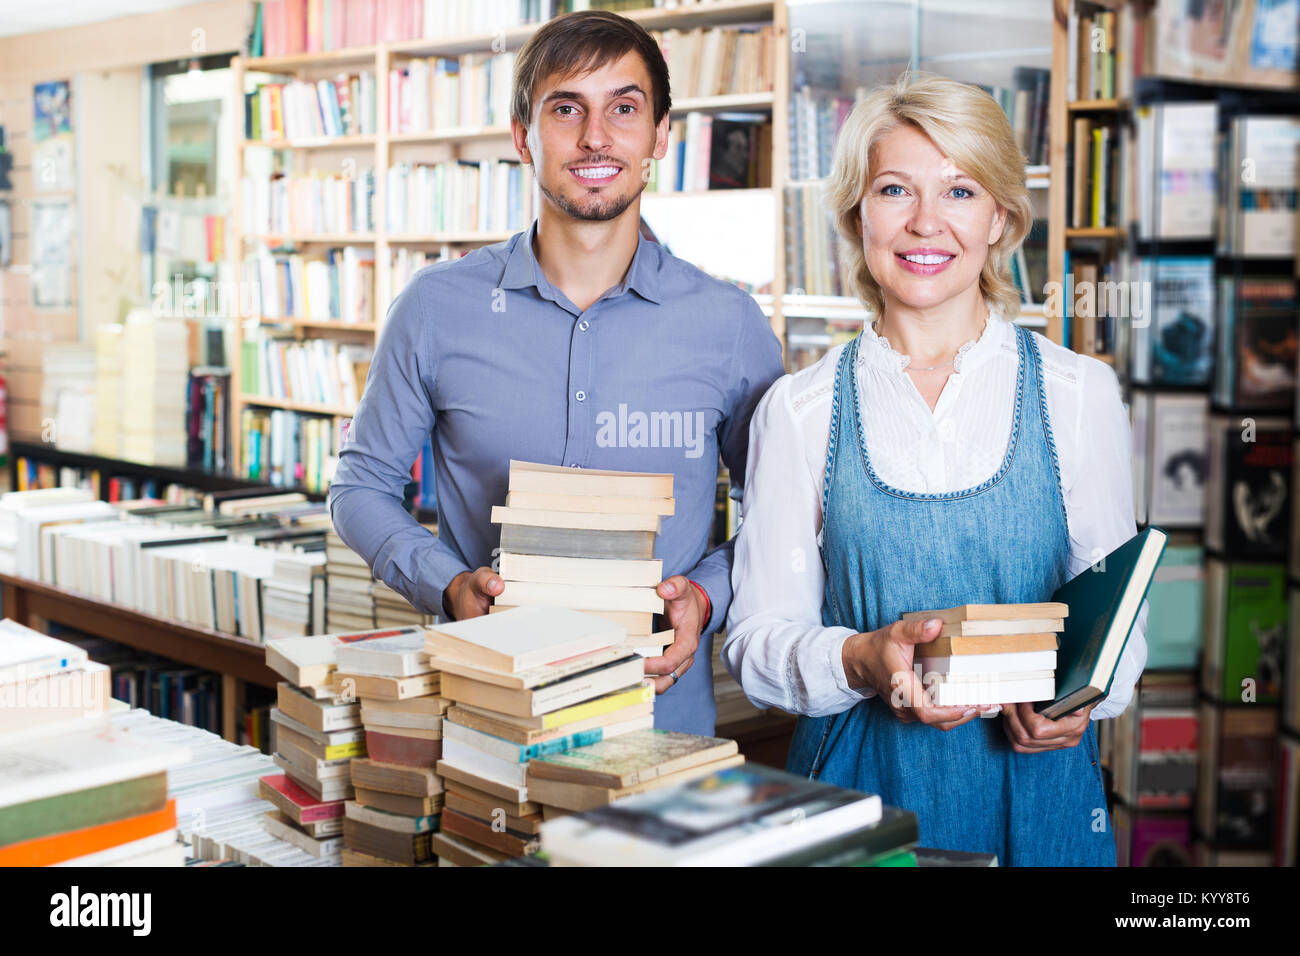 Young Man Carrying Pile Of Books Stock Photos  Young Man Carrying Pile Of Books Stock -1136